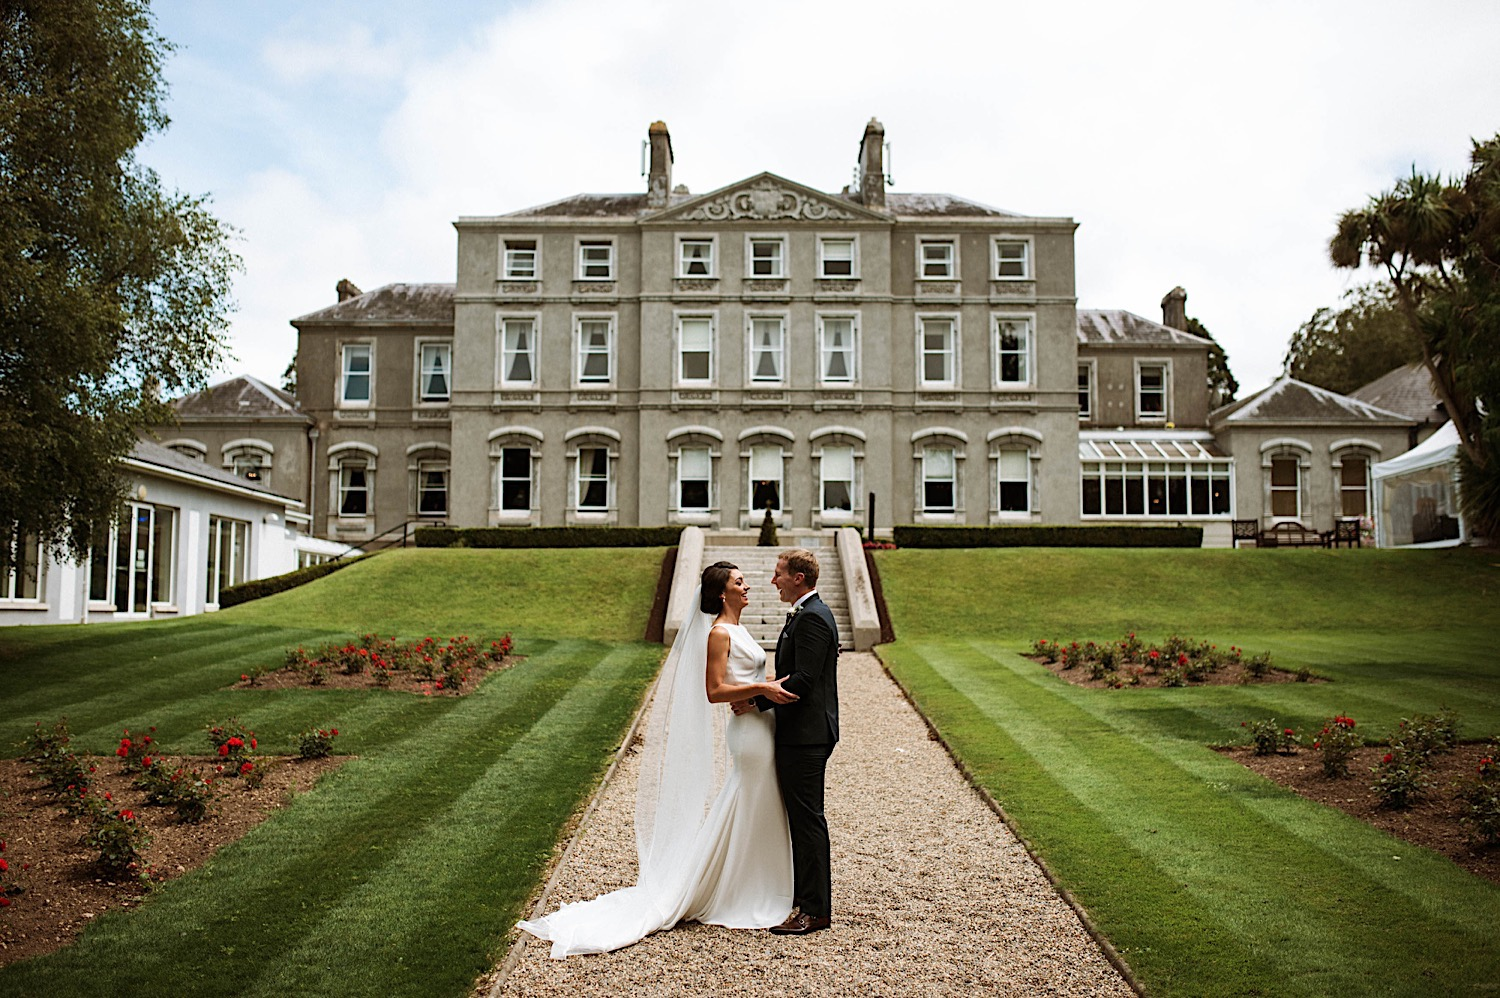 faithlegg house hotel wedding